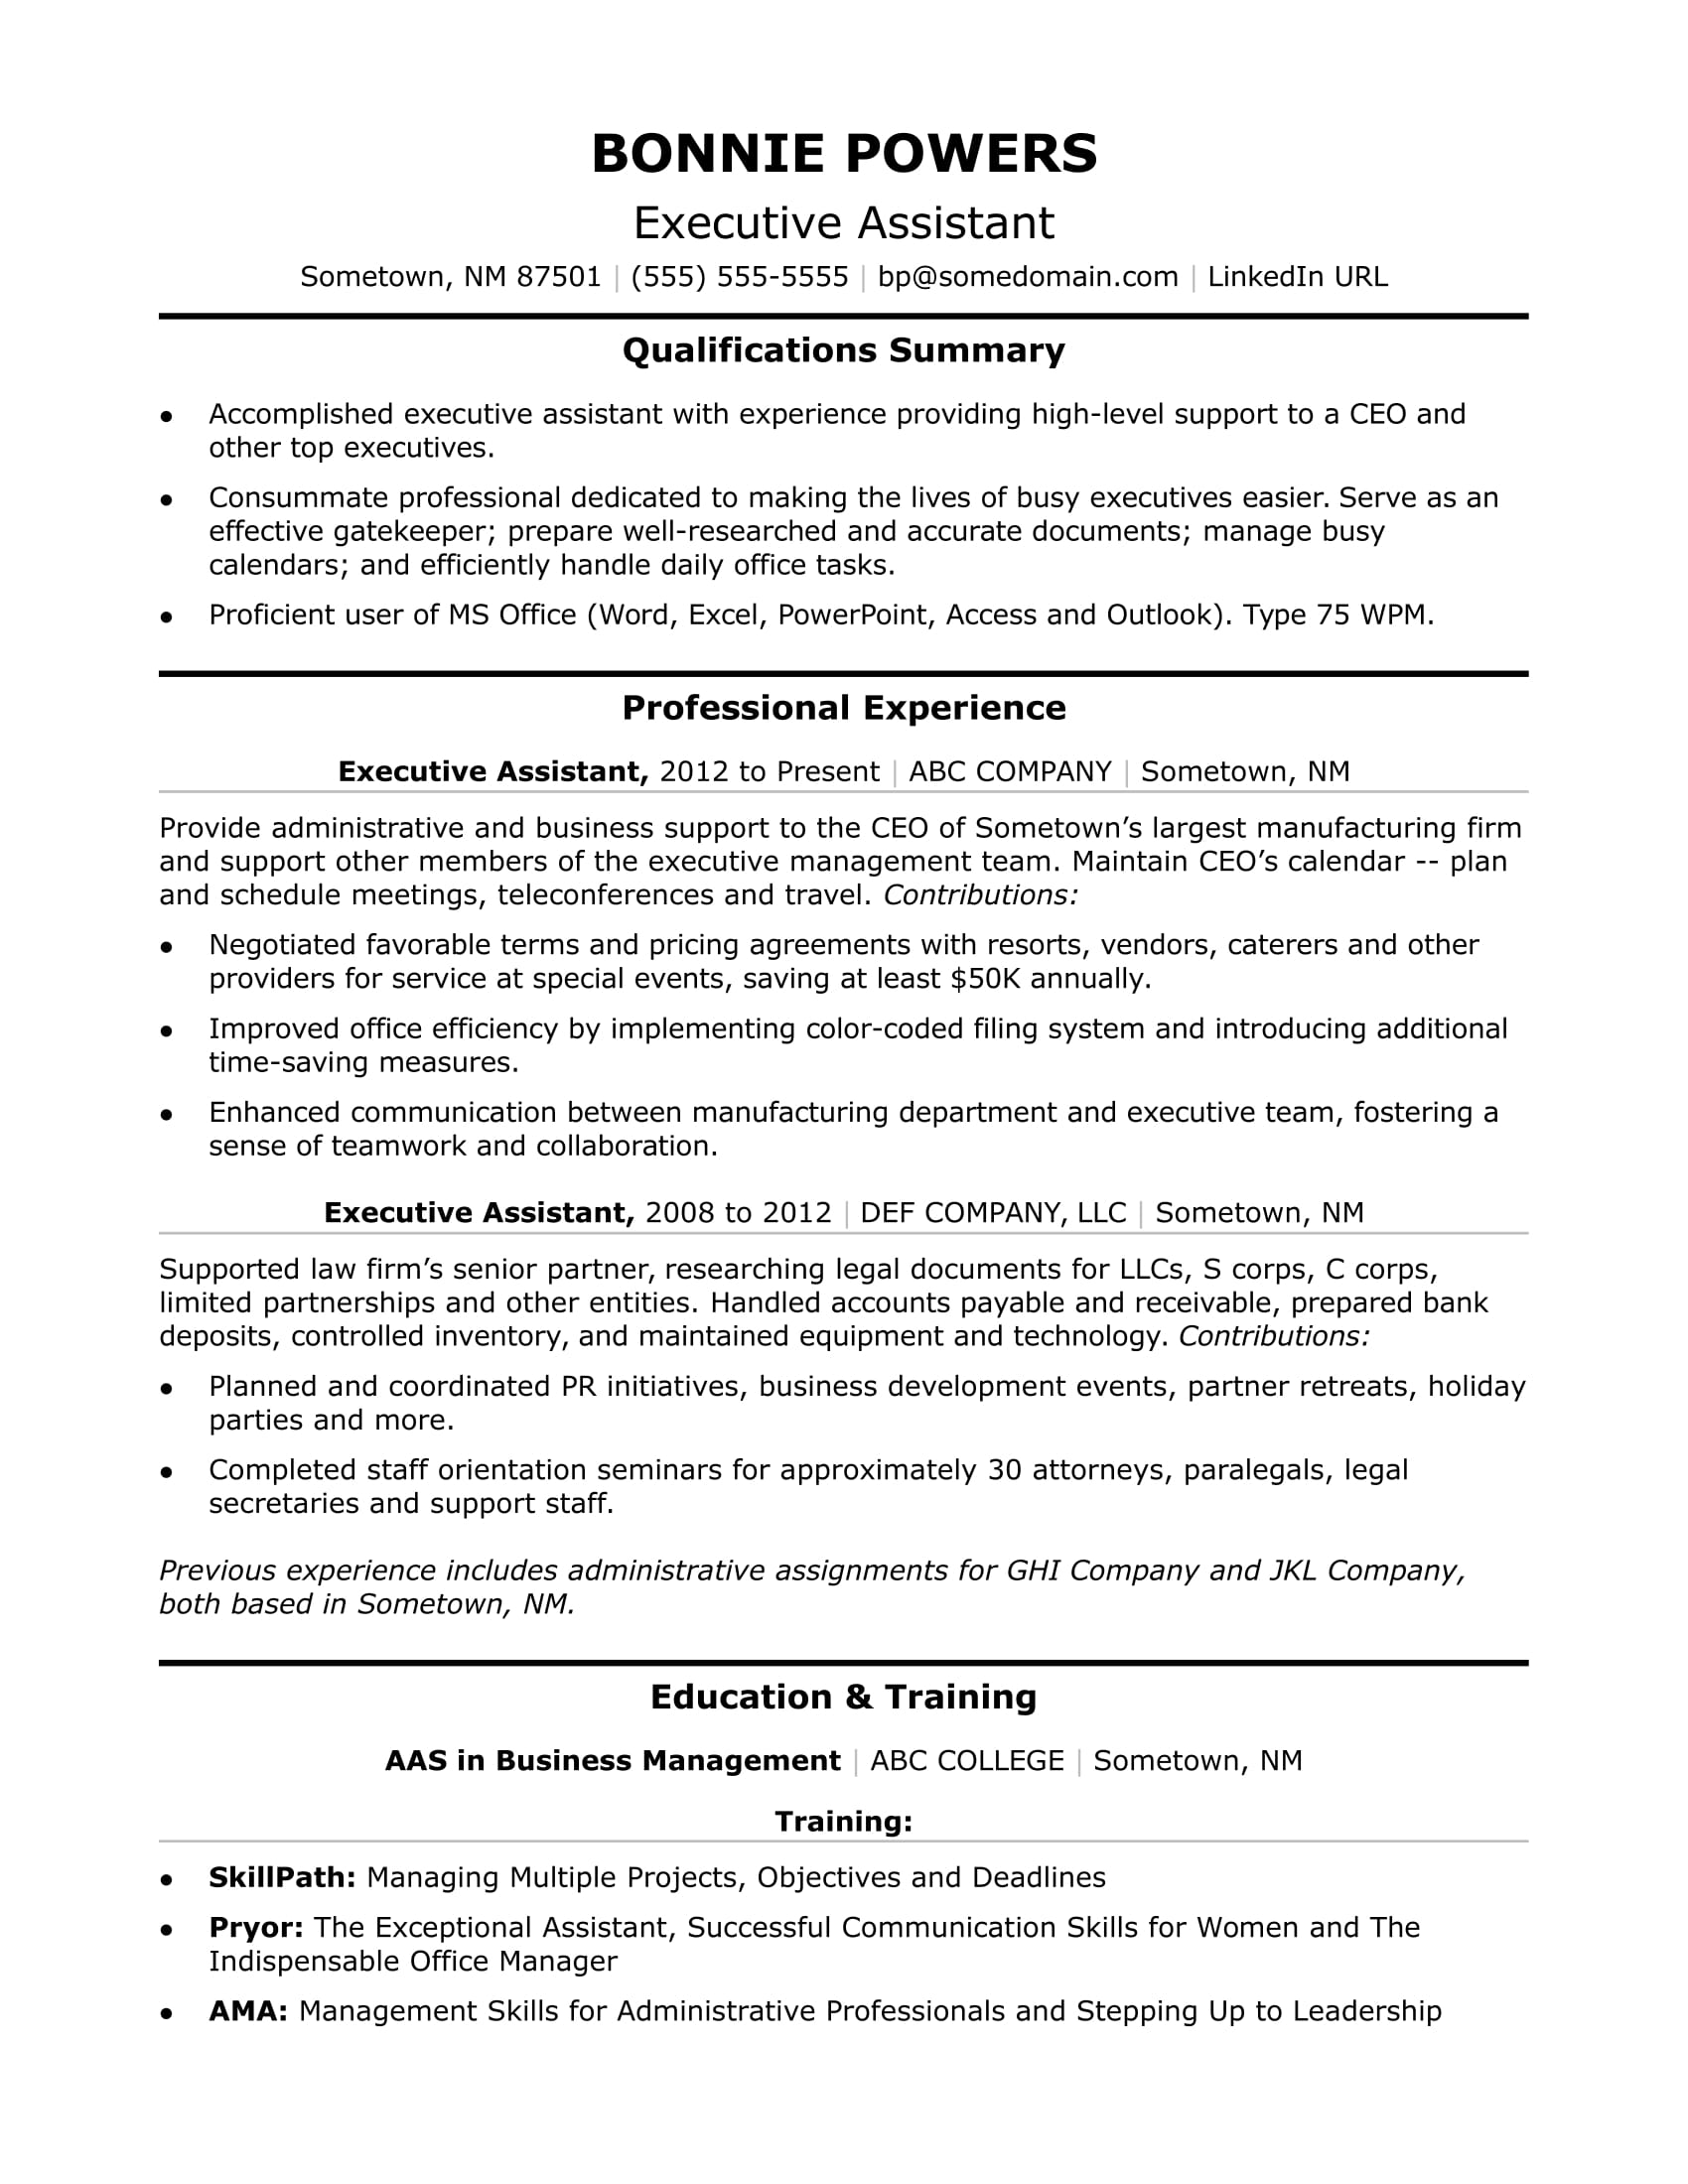 Executive administrative assistant resume sample monster executive administrative assistant resume sample thecheapjerseys